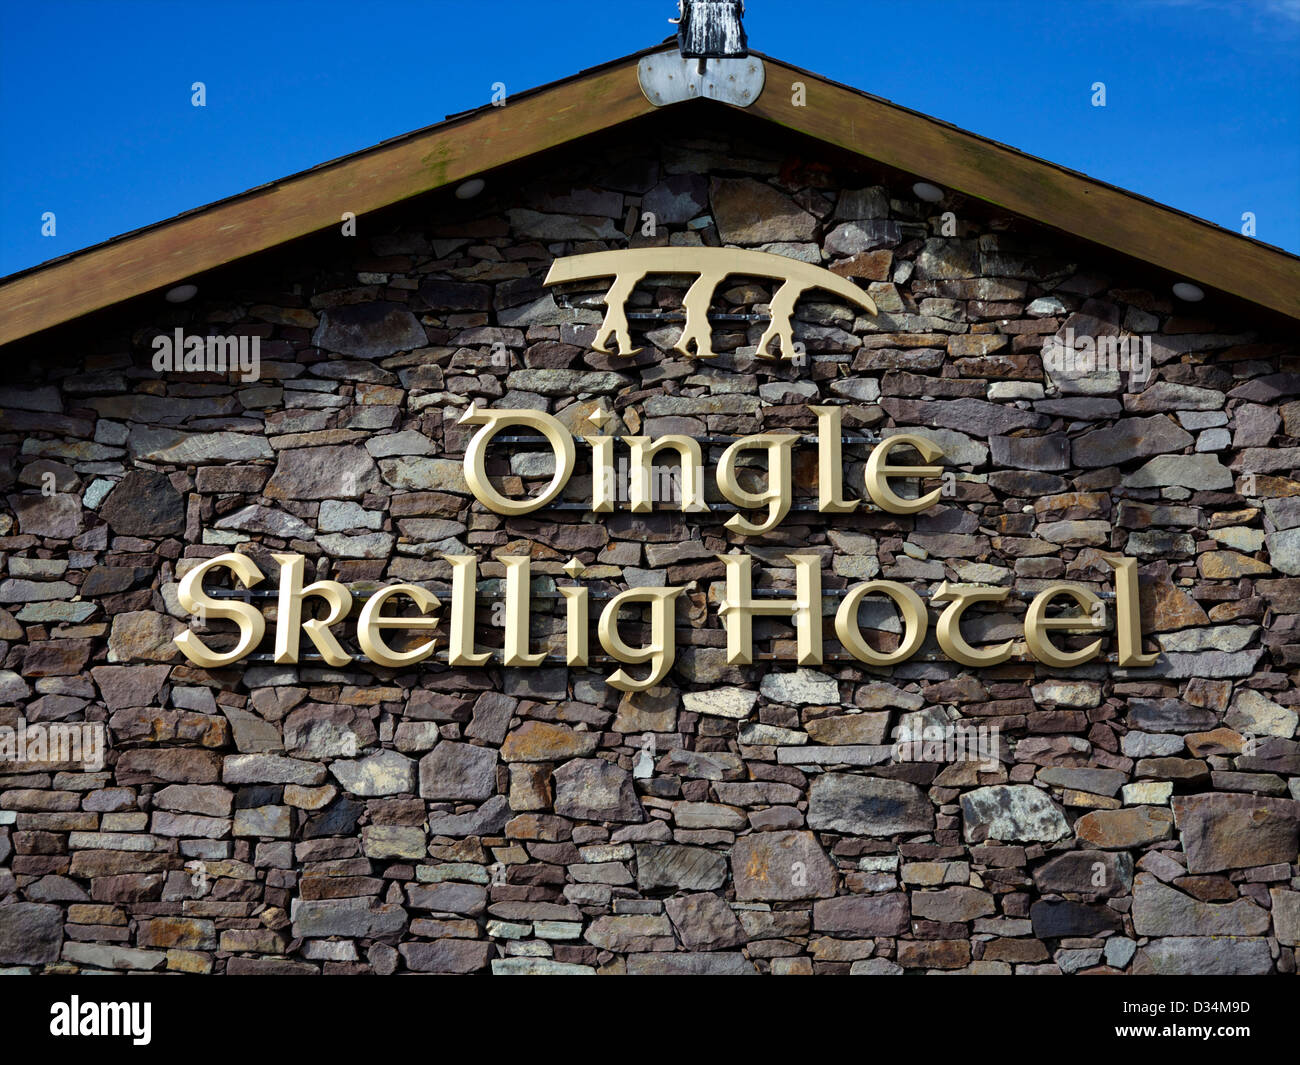 The name 'Dingle Skellig Hotel' in gold letters on granite in Dingle, county Kerry, Ireland with three men - Stock Image